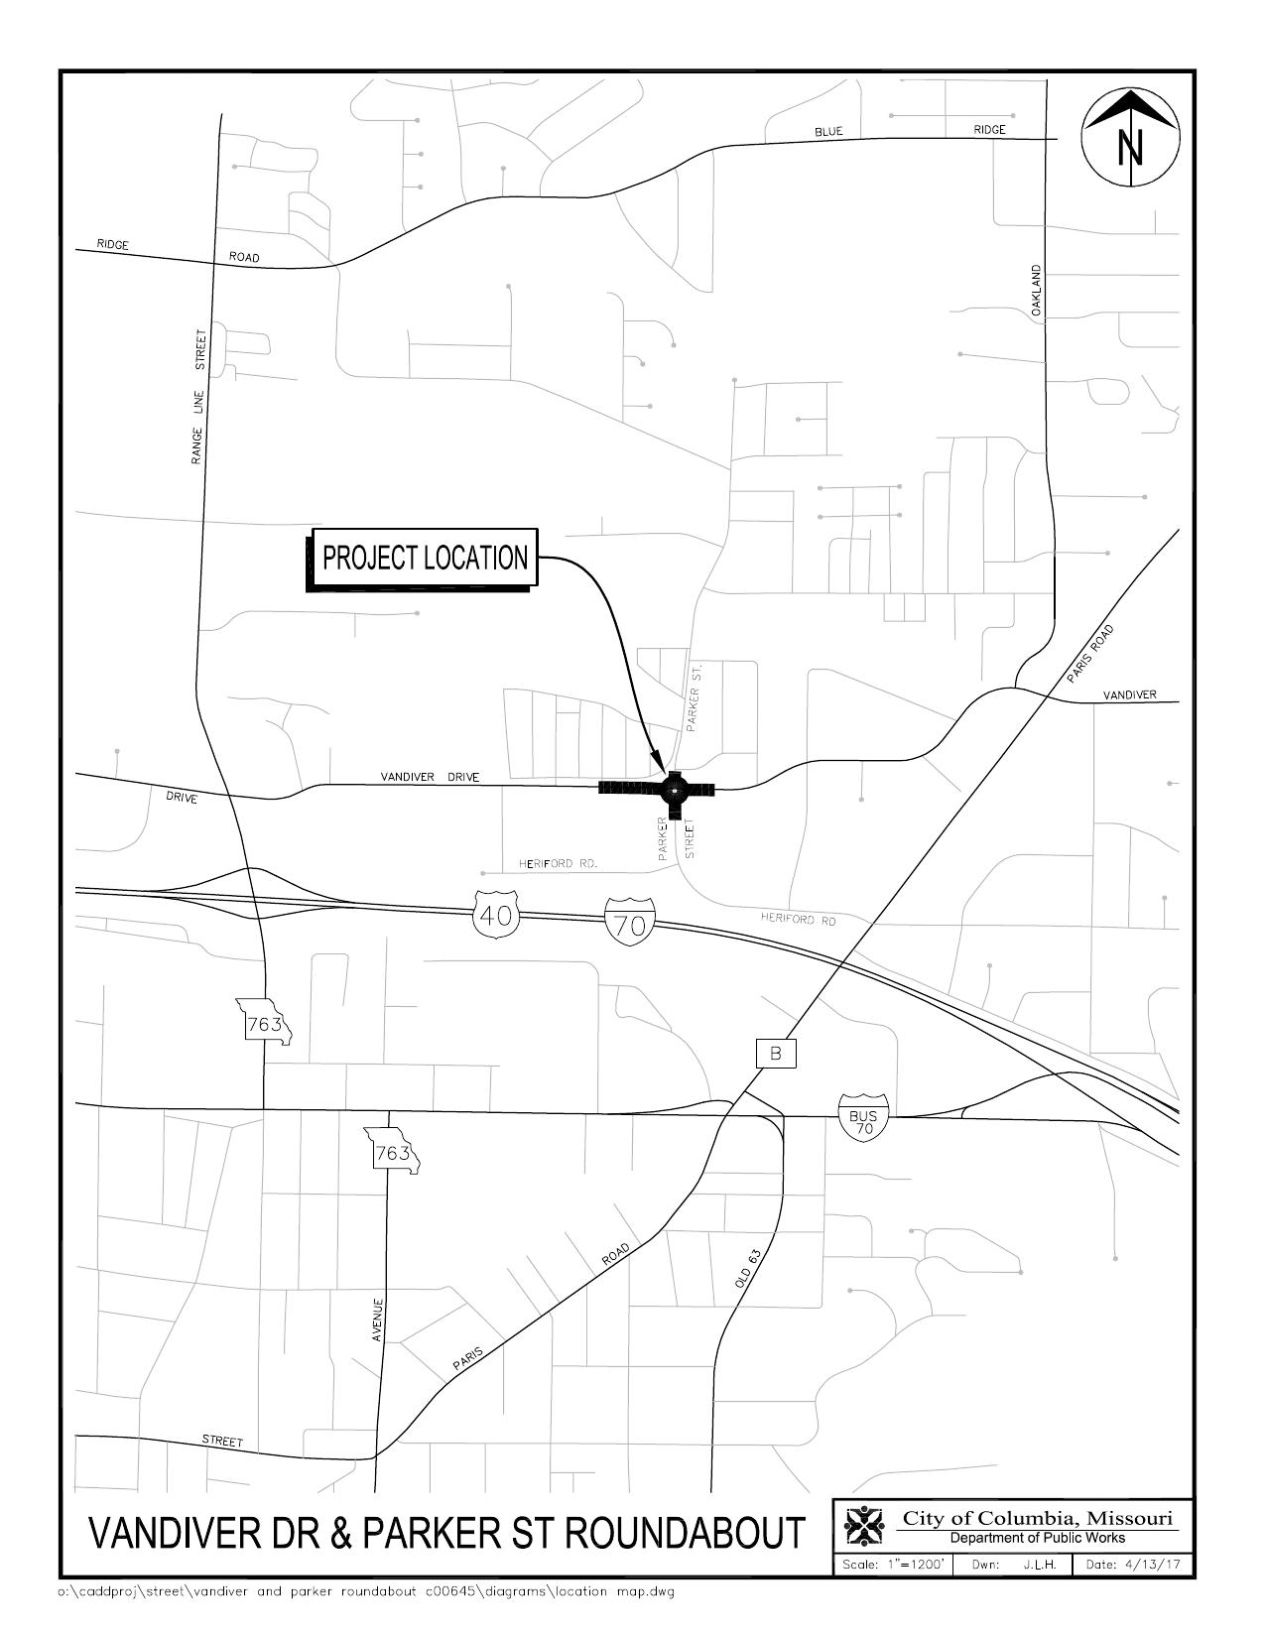 Roundabout to be built at intersection of vandiver and parker